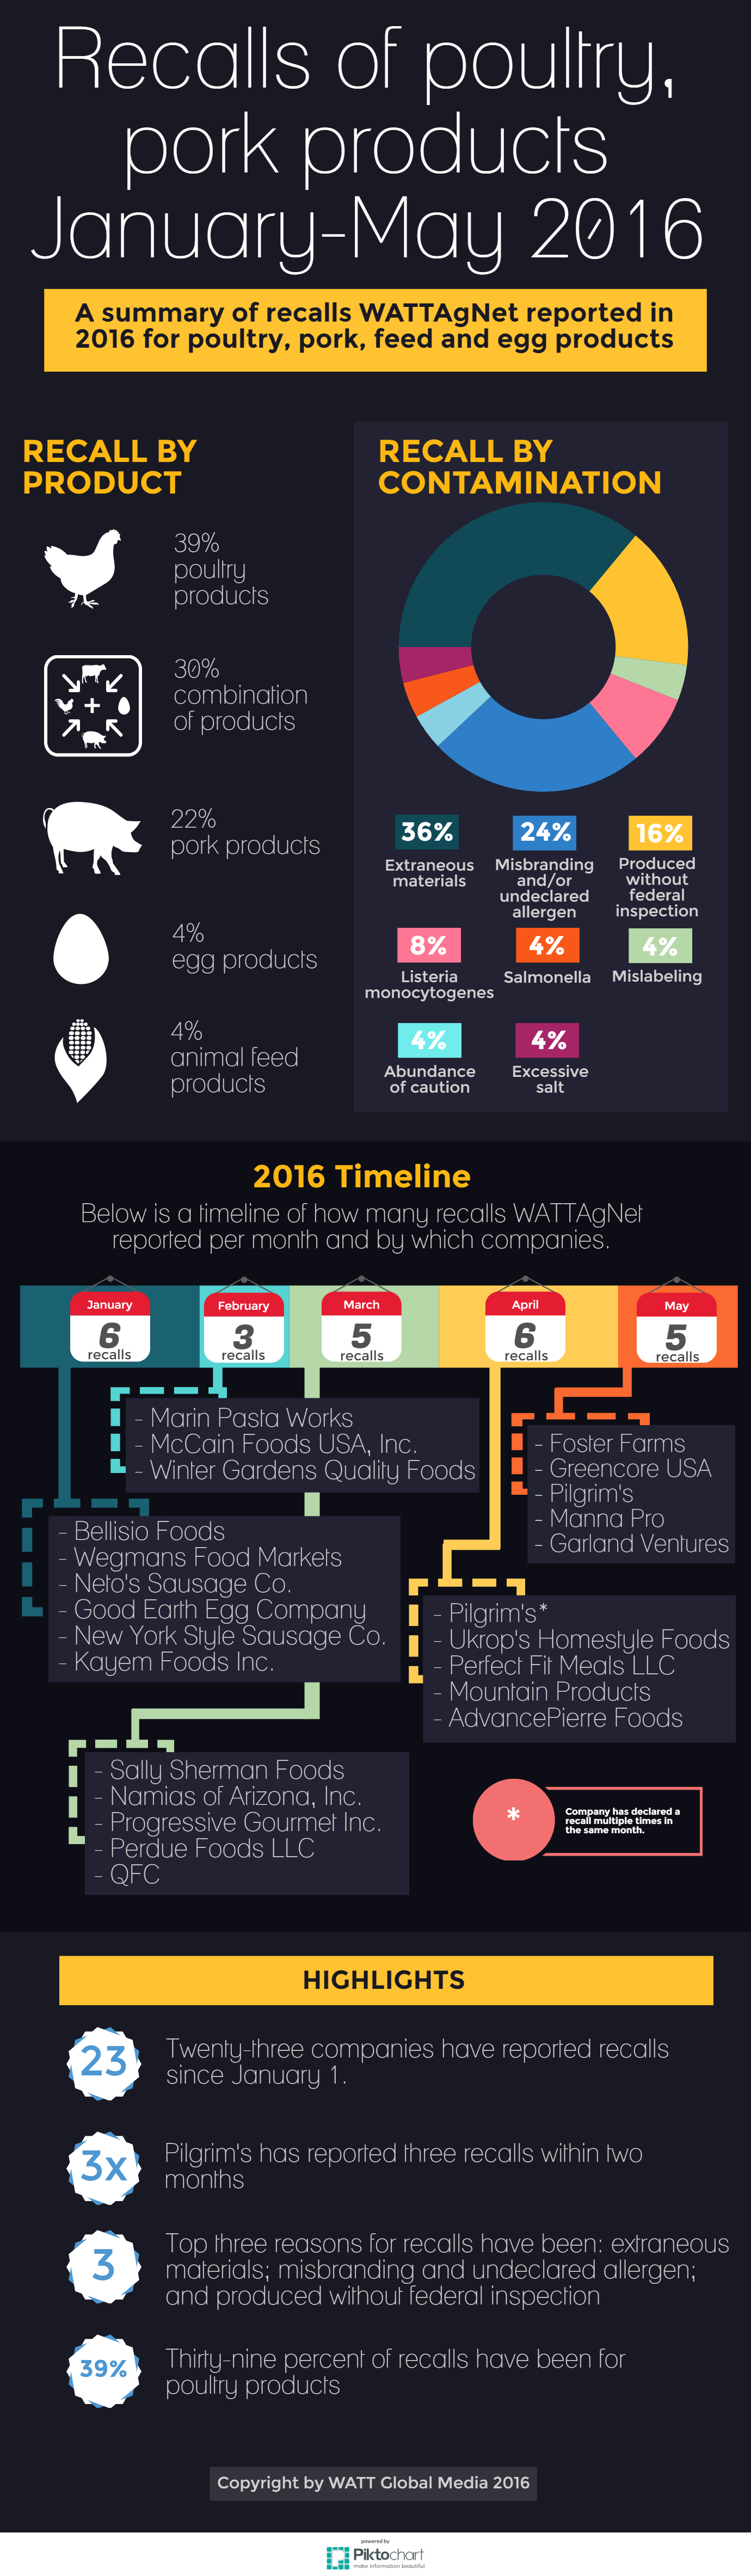 Recalls-of-poultry-pork-products-january-may-2016.infographic.png